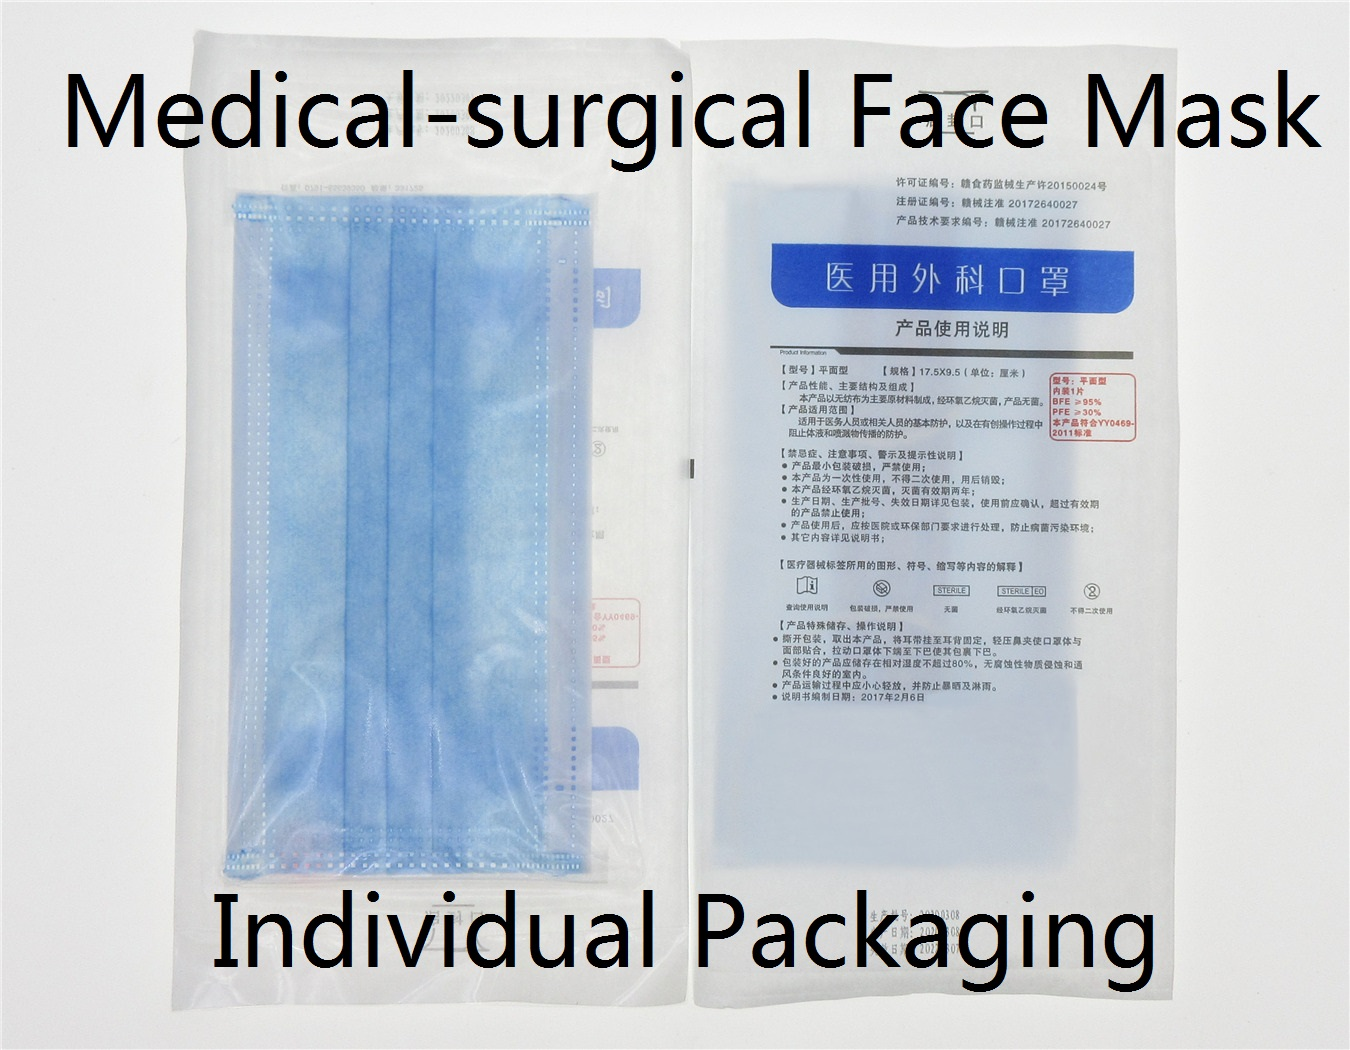 Medical-surgical Face Masks Sterile Masks Surgical Protection-Individual Packed